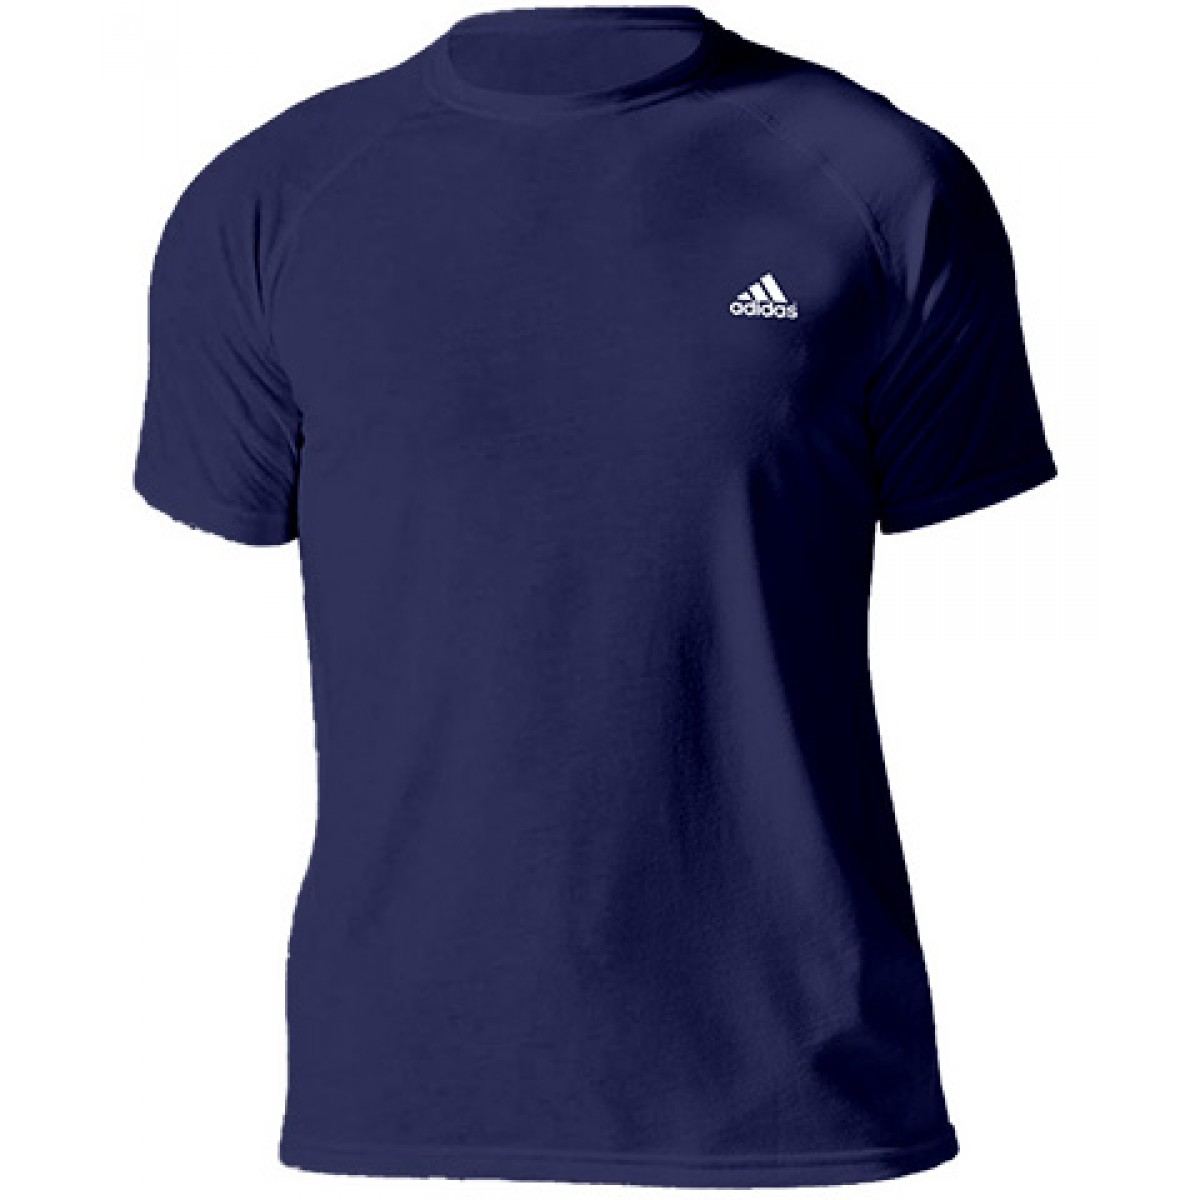 Adidas Embroidered Logo Essential Crew Neck T-shirt-Navy-XL